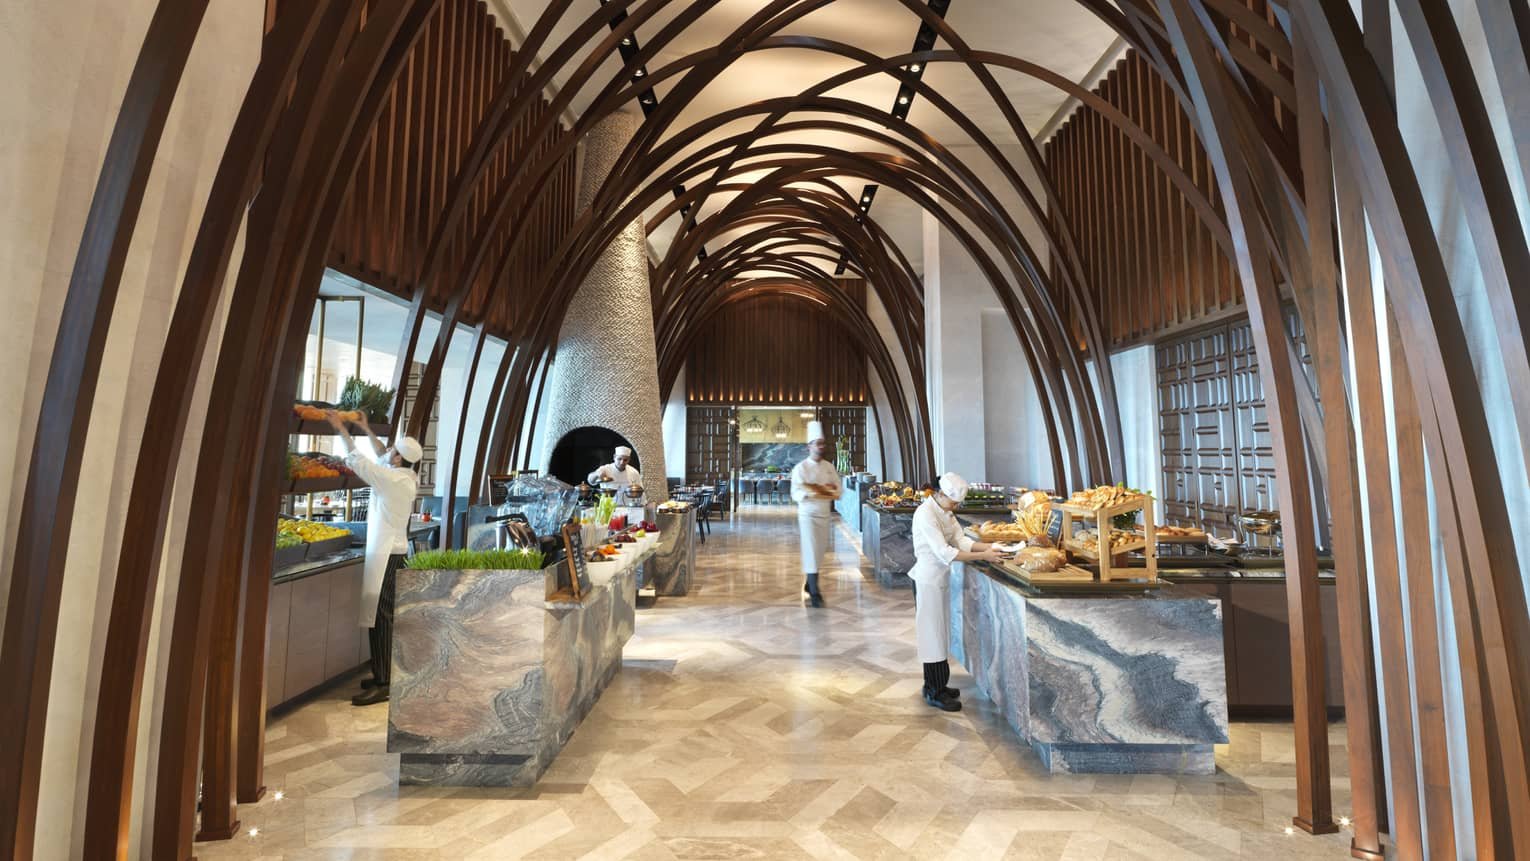 Soaring ceilings, wood arches over marble buffet tables where chefs prepare food